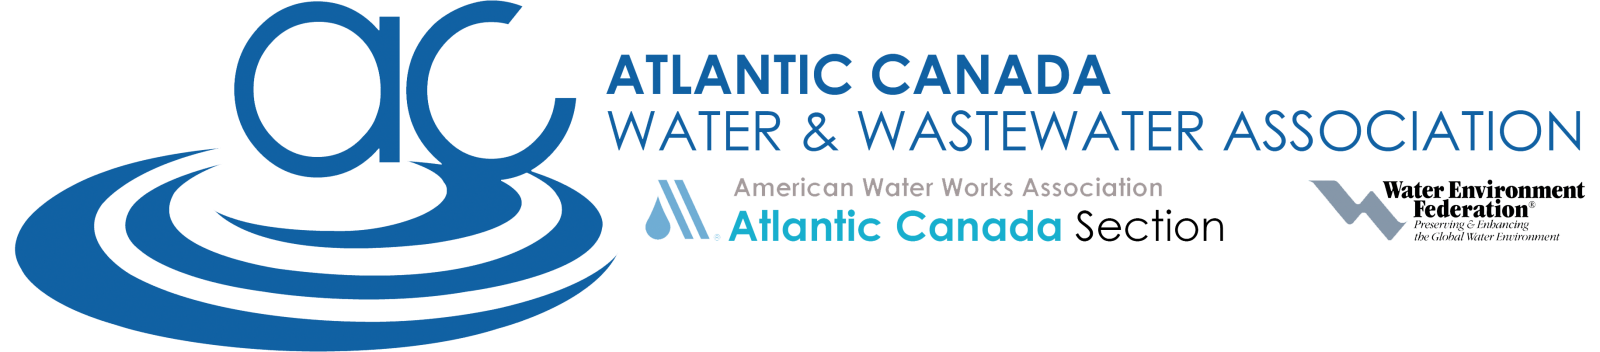 Atlantic Canada Water and Wastewater Association (Professional Association)